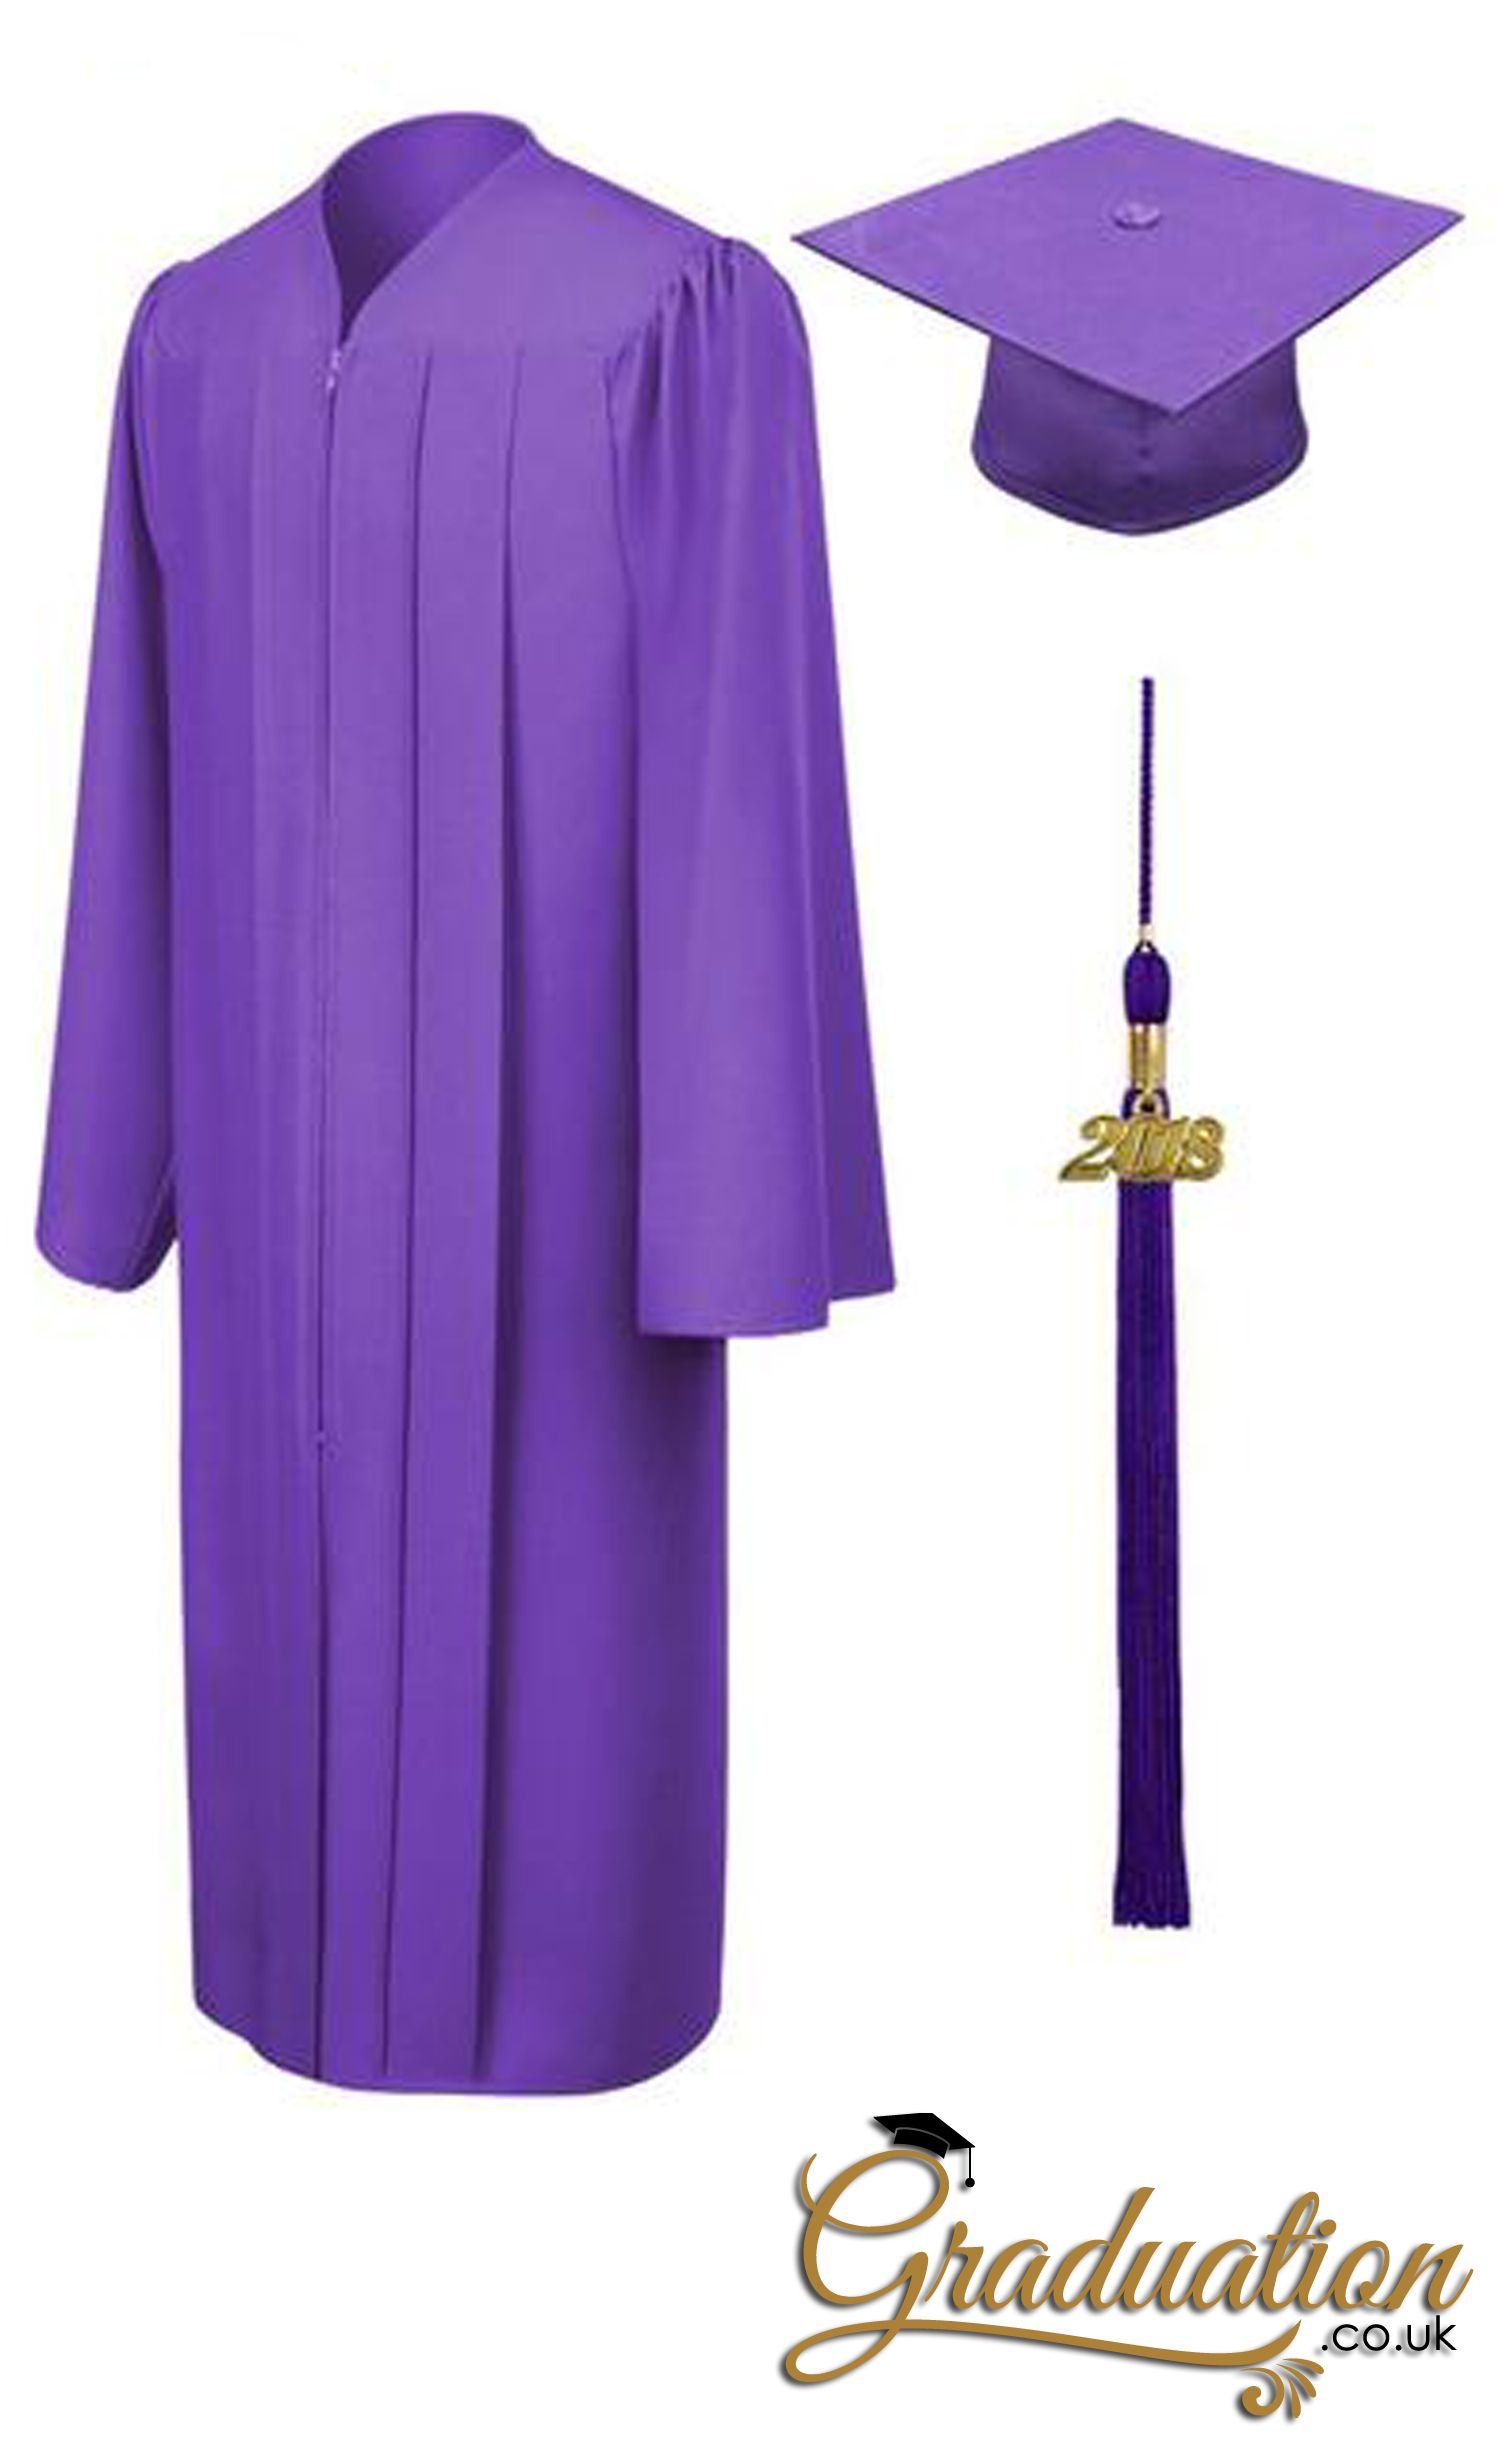 Many Colors and Sizes available Graduation Cap Gown and Tassel Shiny Finish